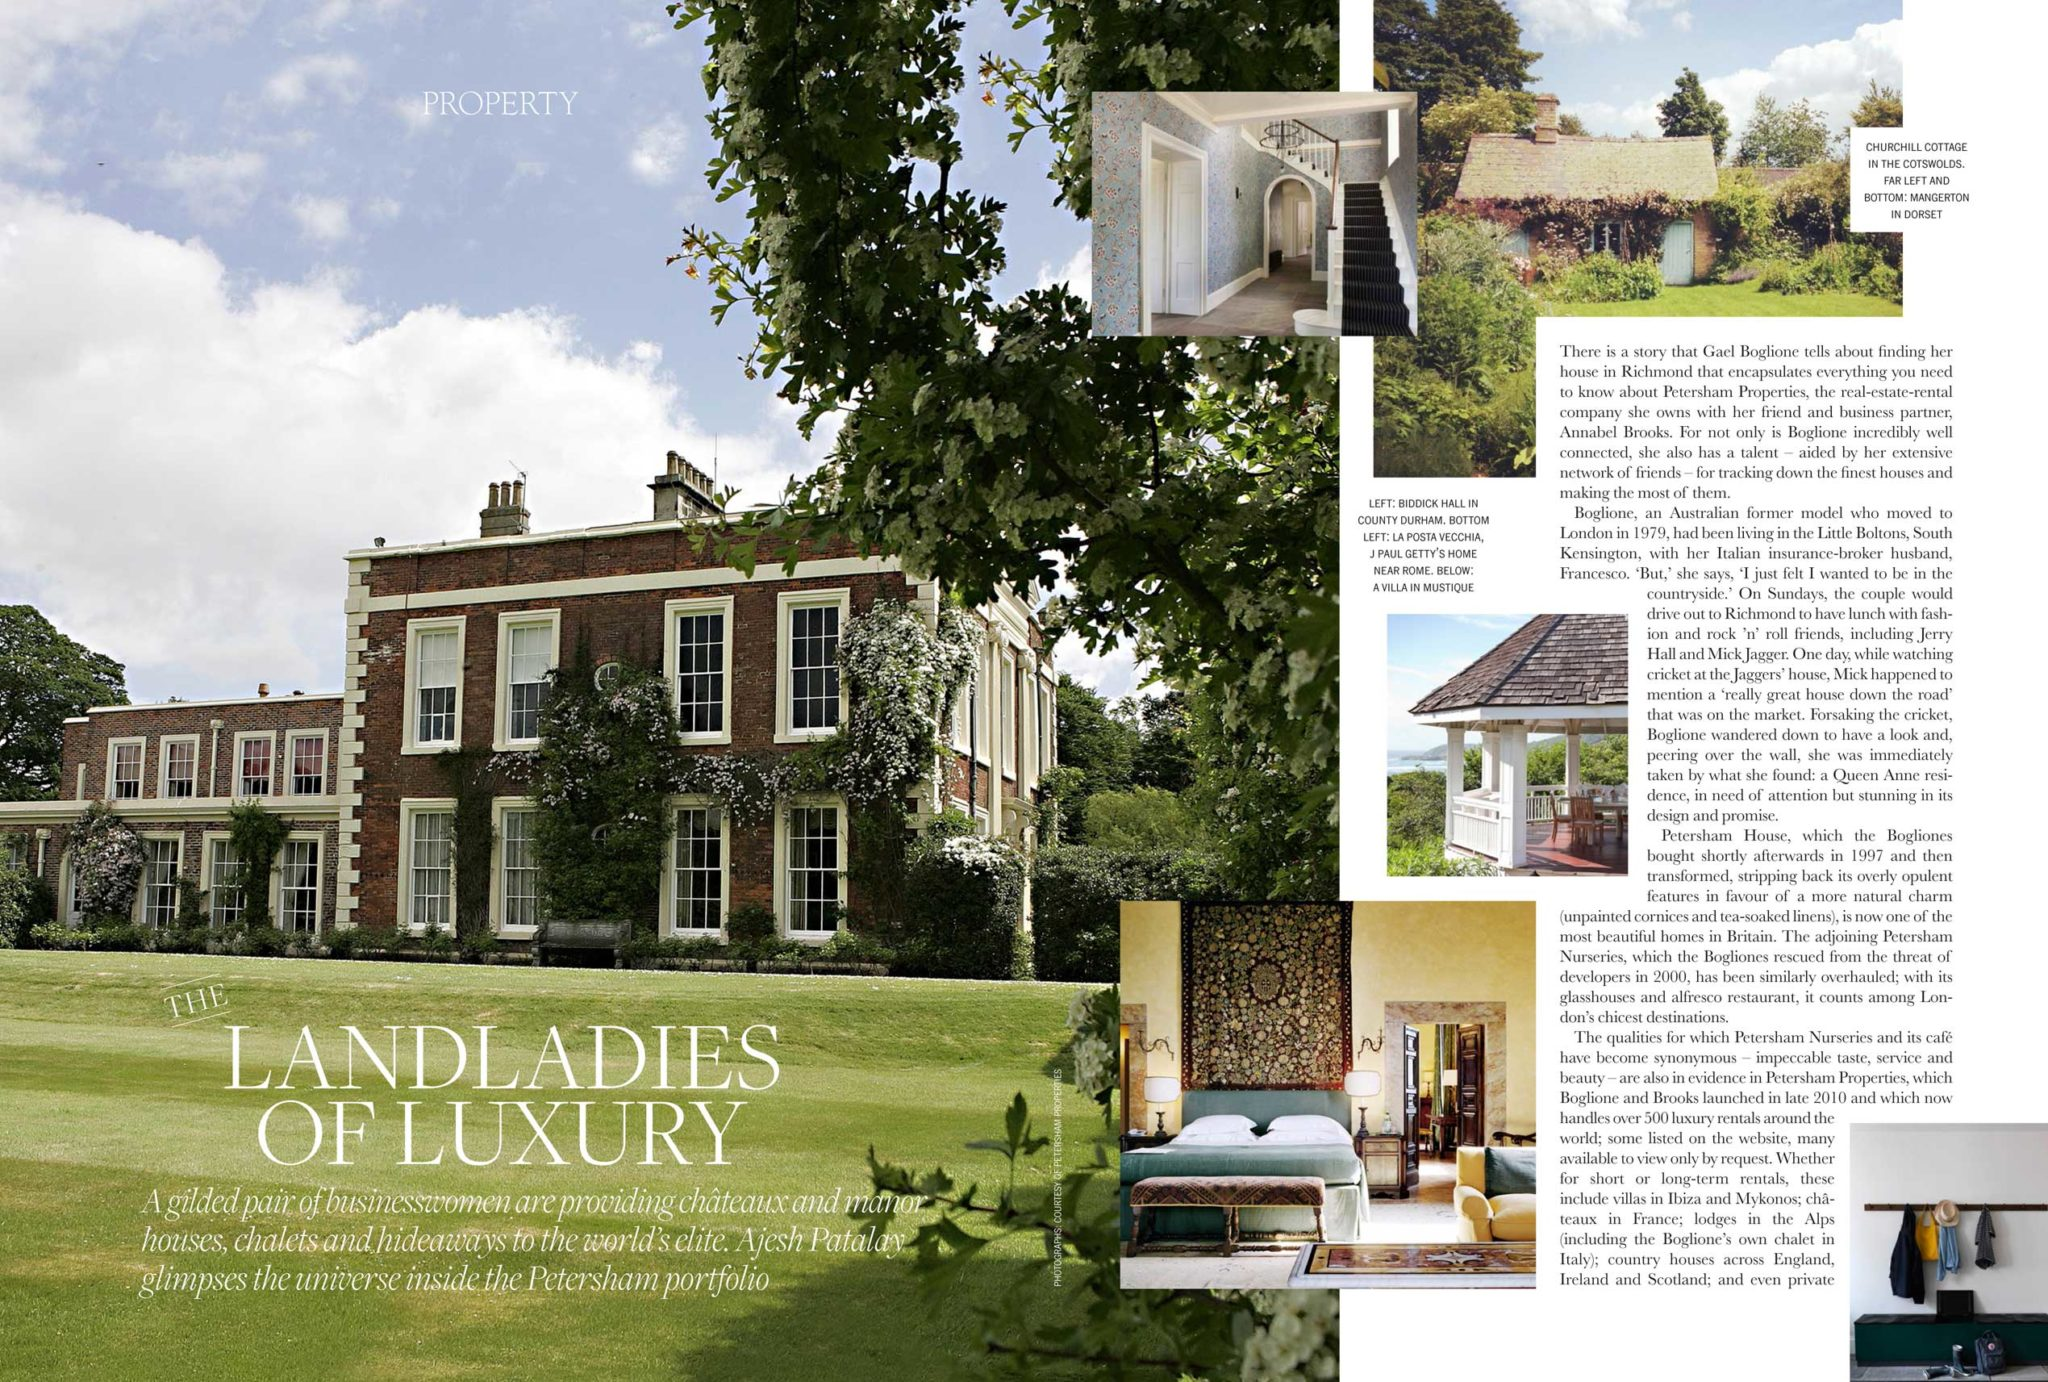 Town-and-Country-2015-Avenue-Petersham-Property-Pg1-2